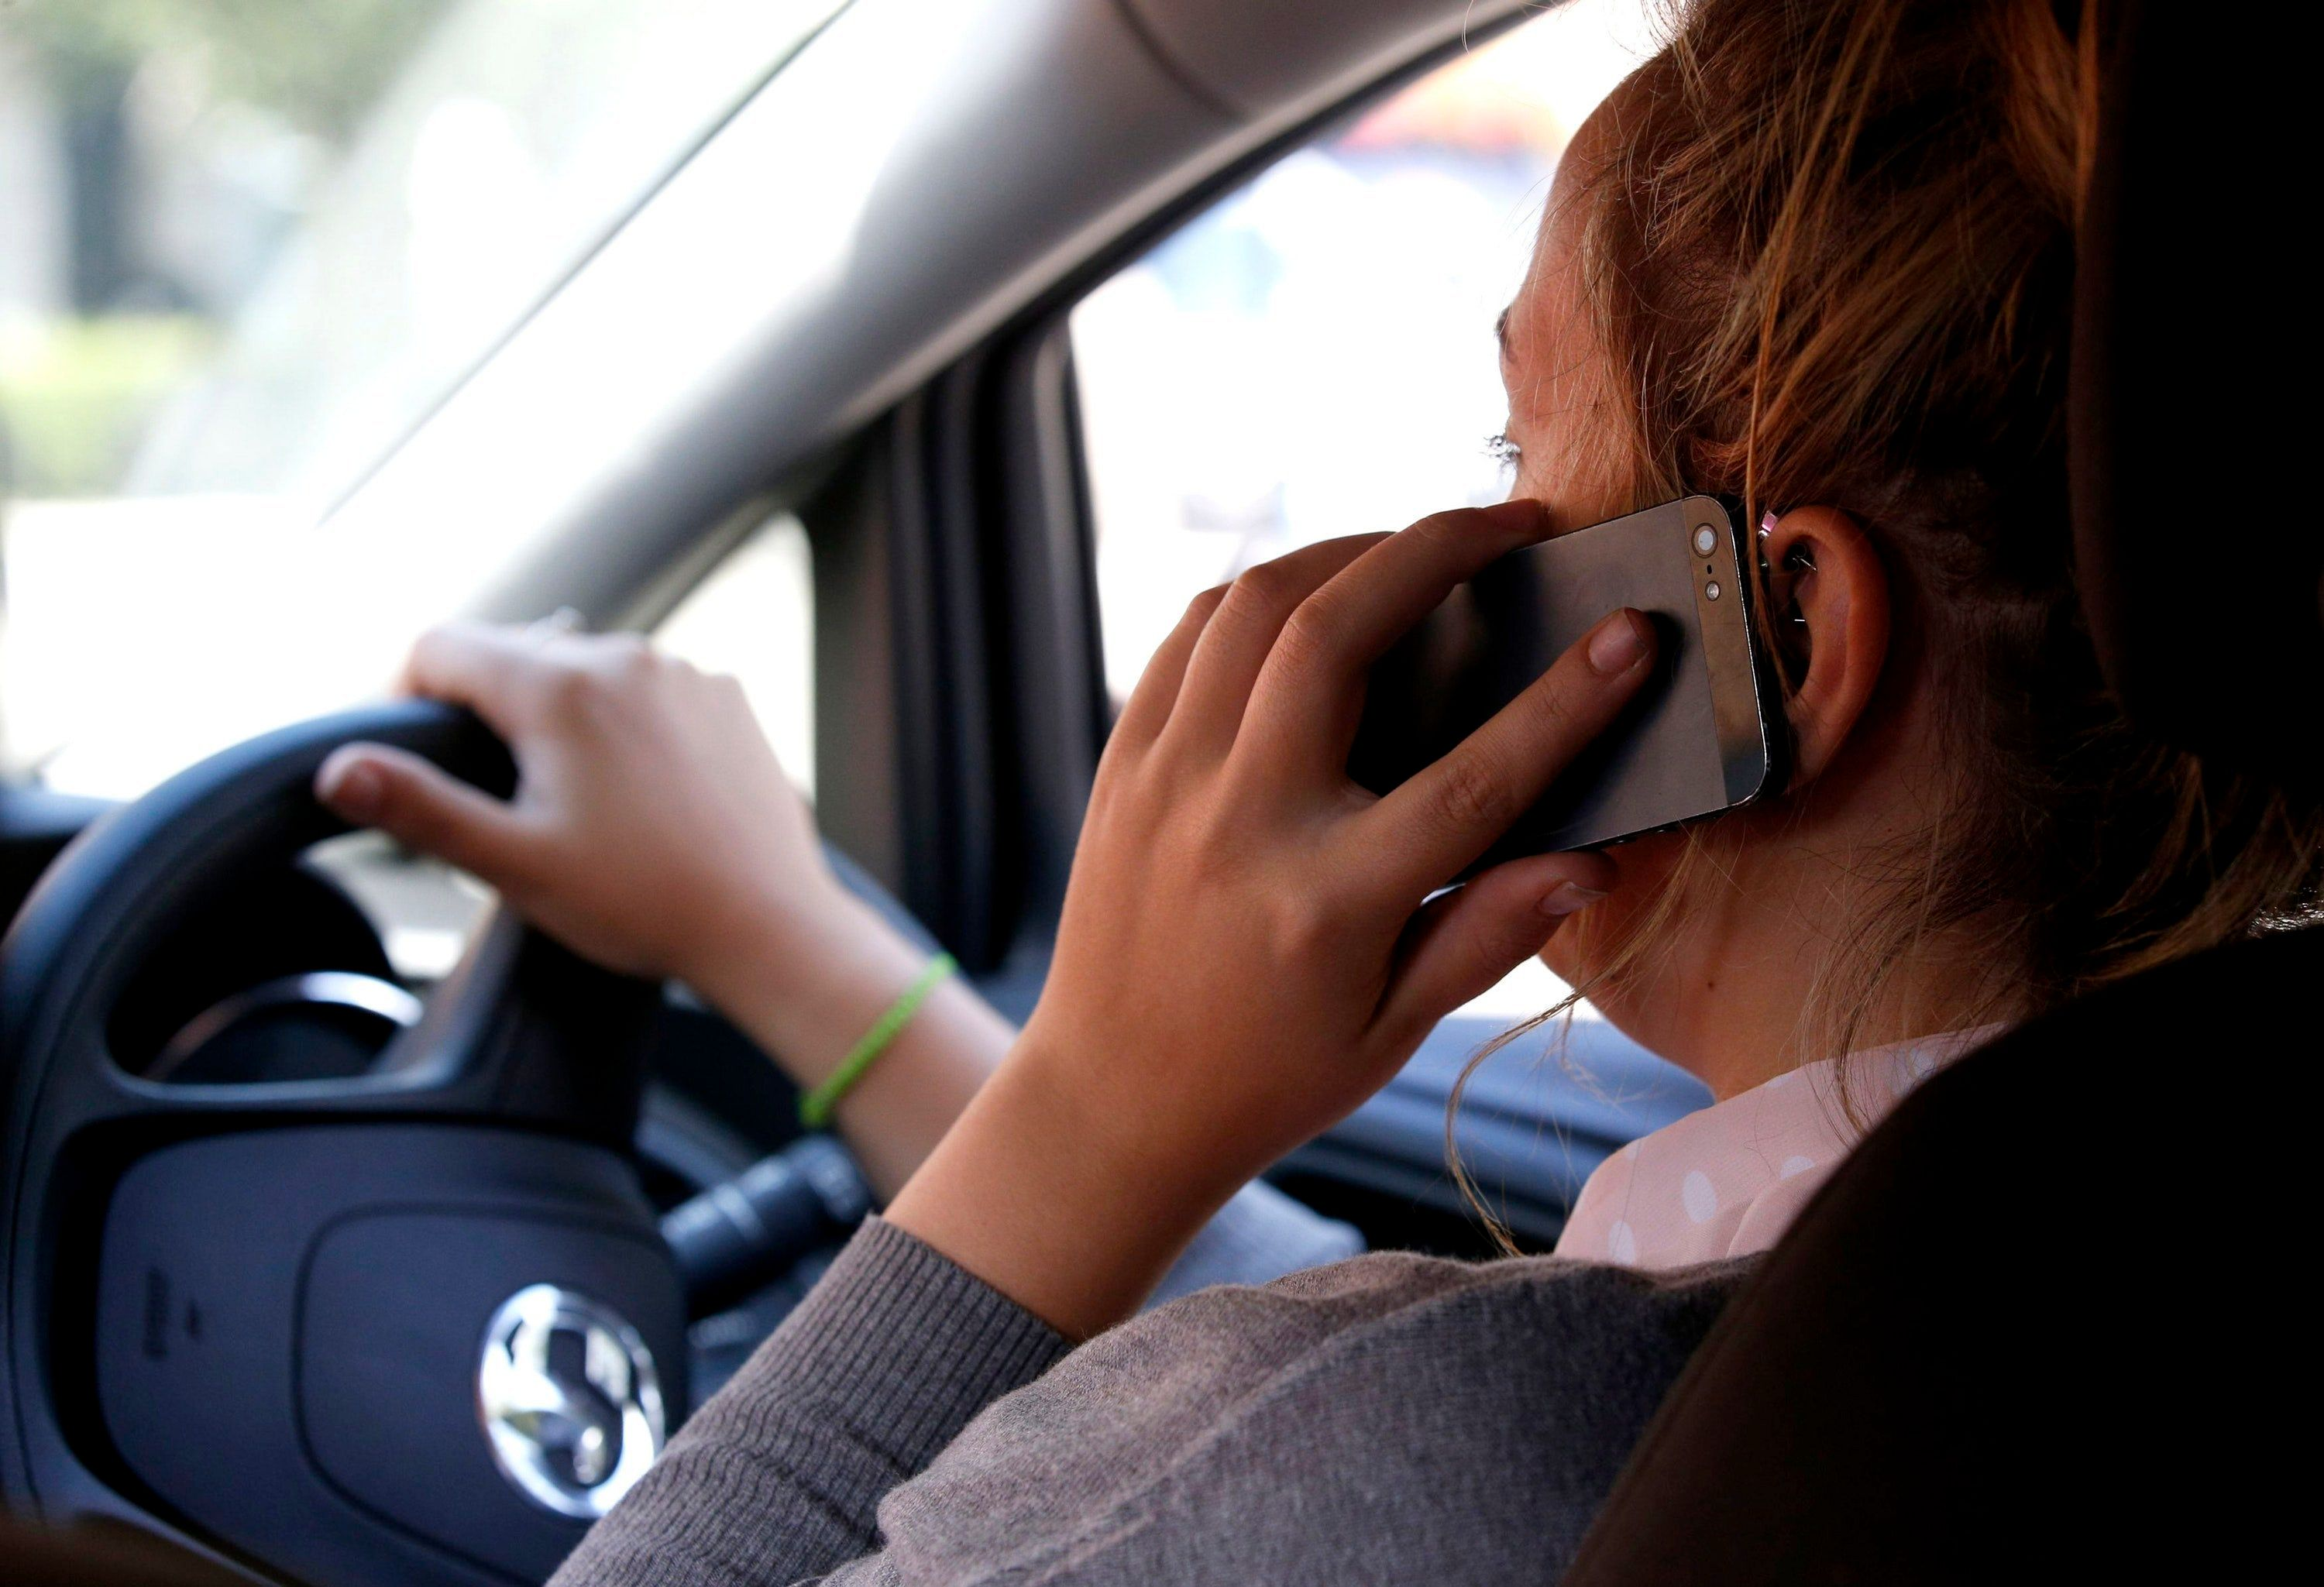 Road signs can detect when mobiles are used at the wheel